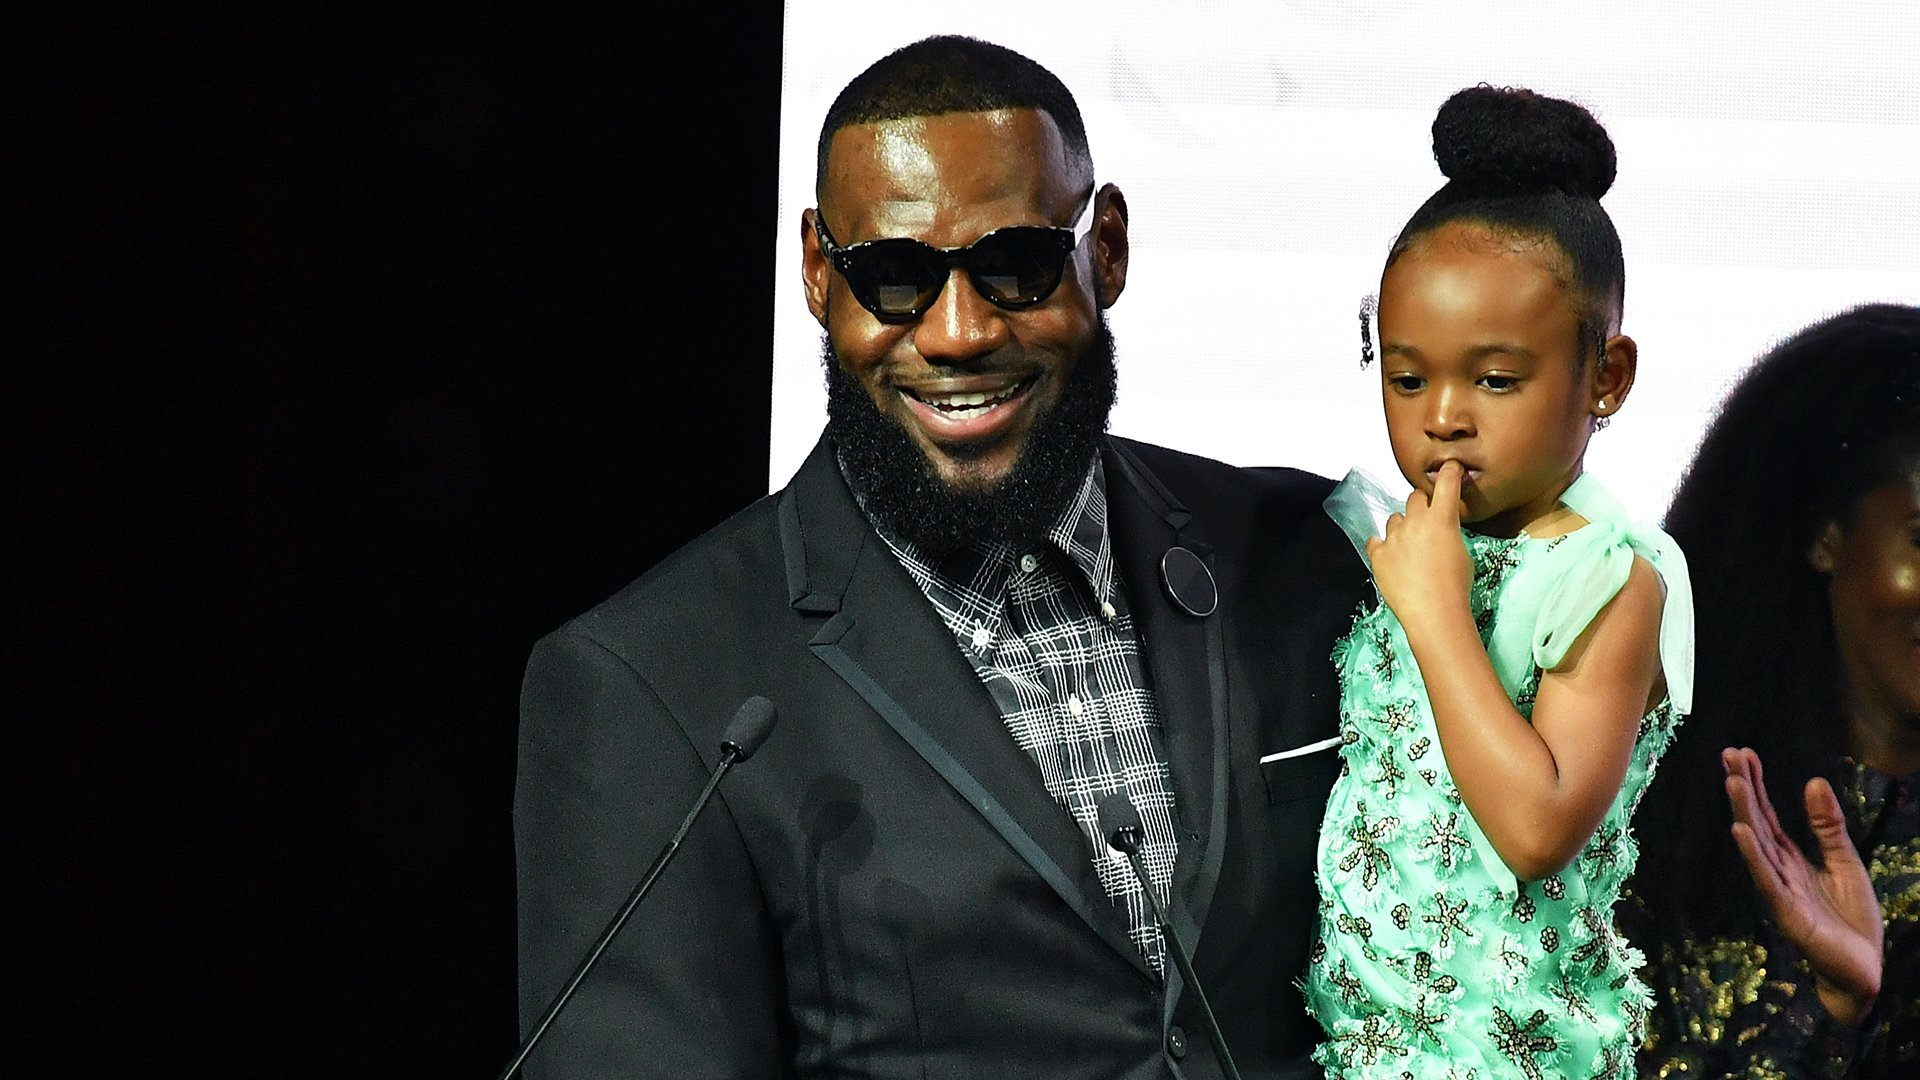 LeBron James holds his daughter Zhuri James during an event at New York Fashion Week on Sept. 4, 2018. (Credit: Slaven Vlasic / Getty Images)